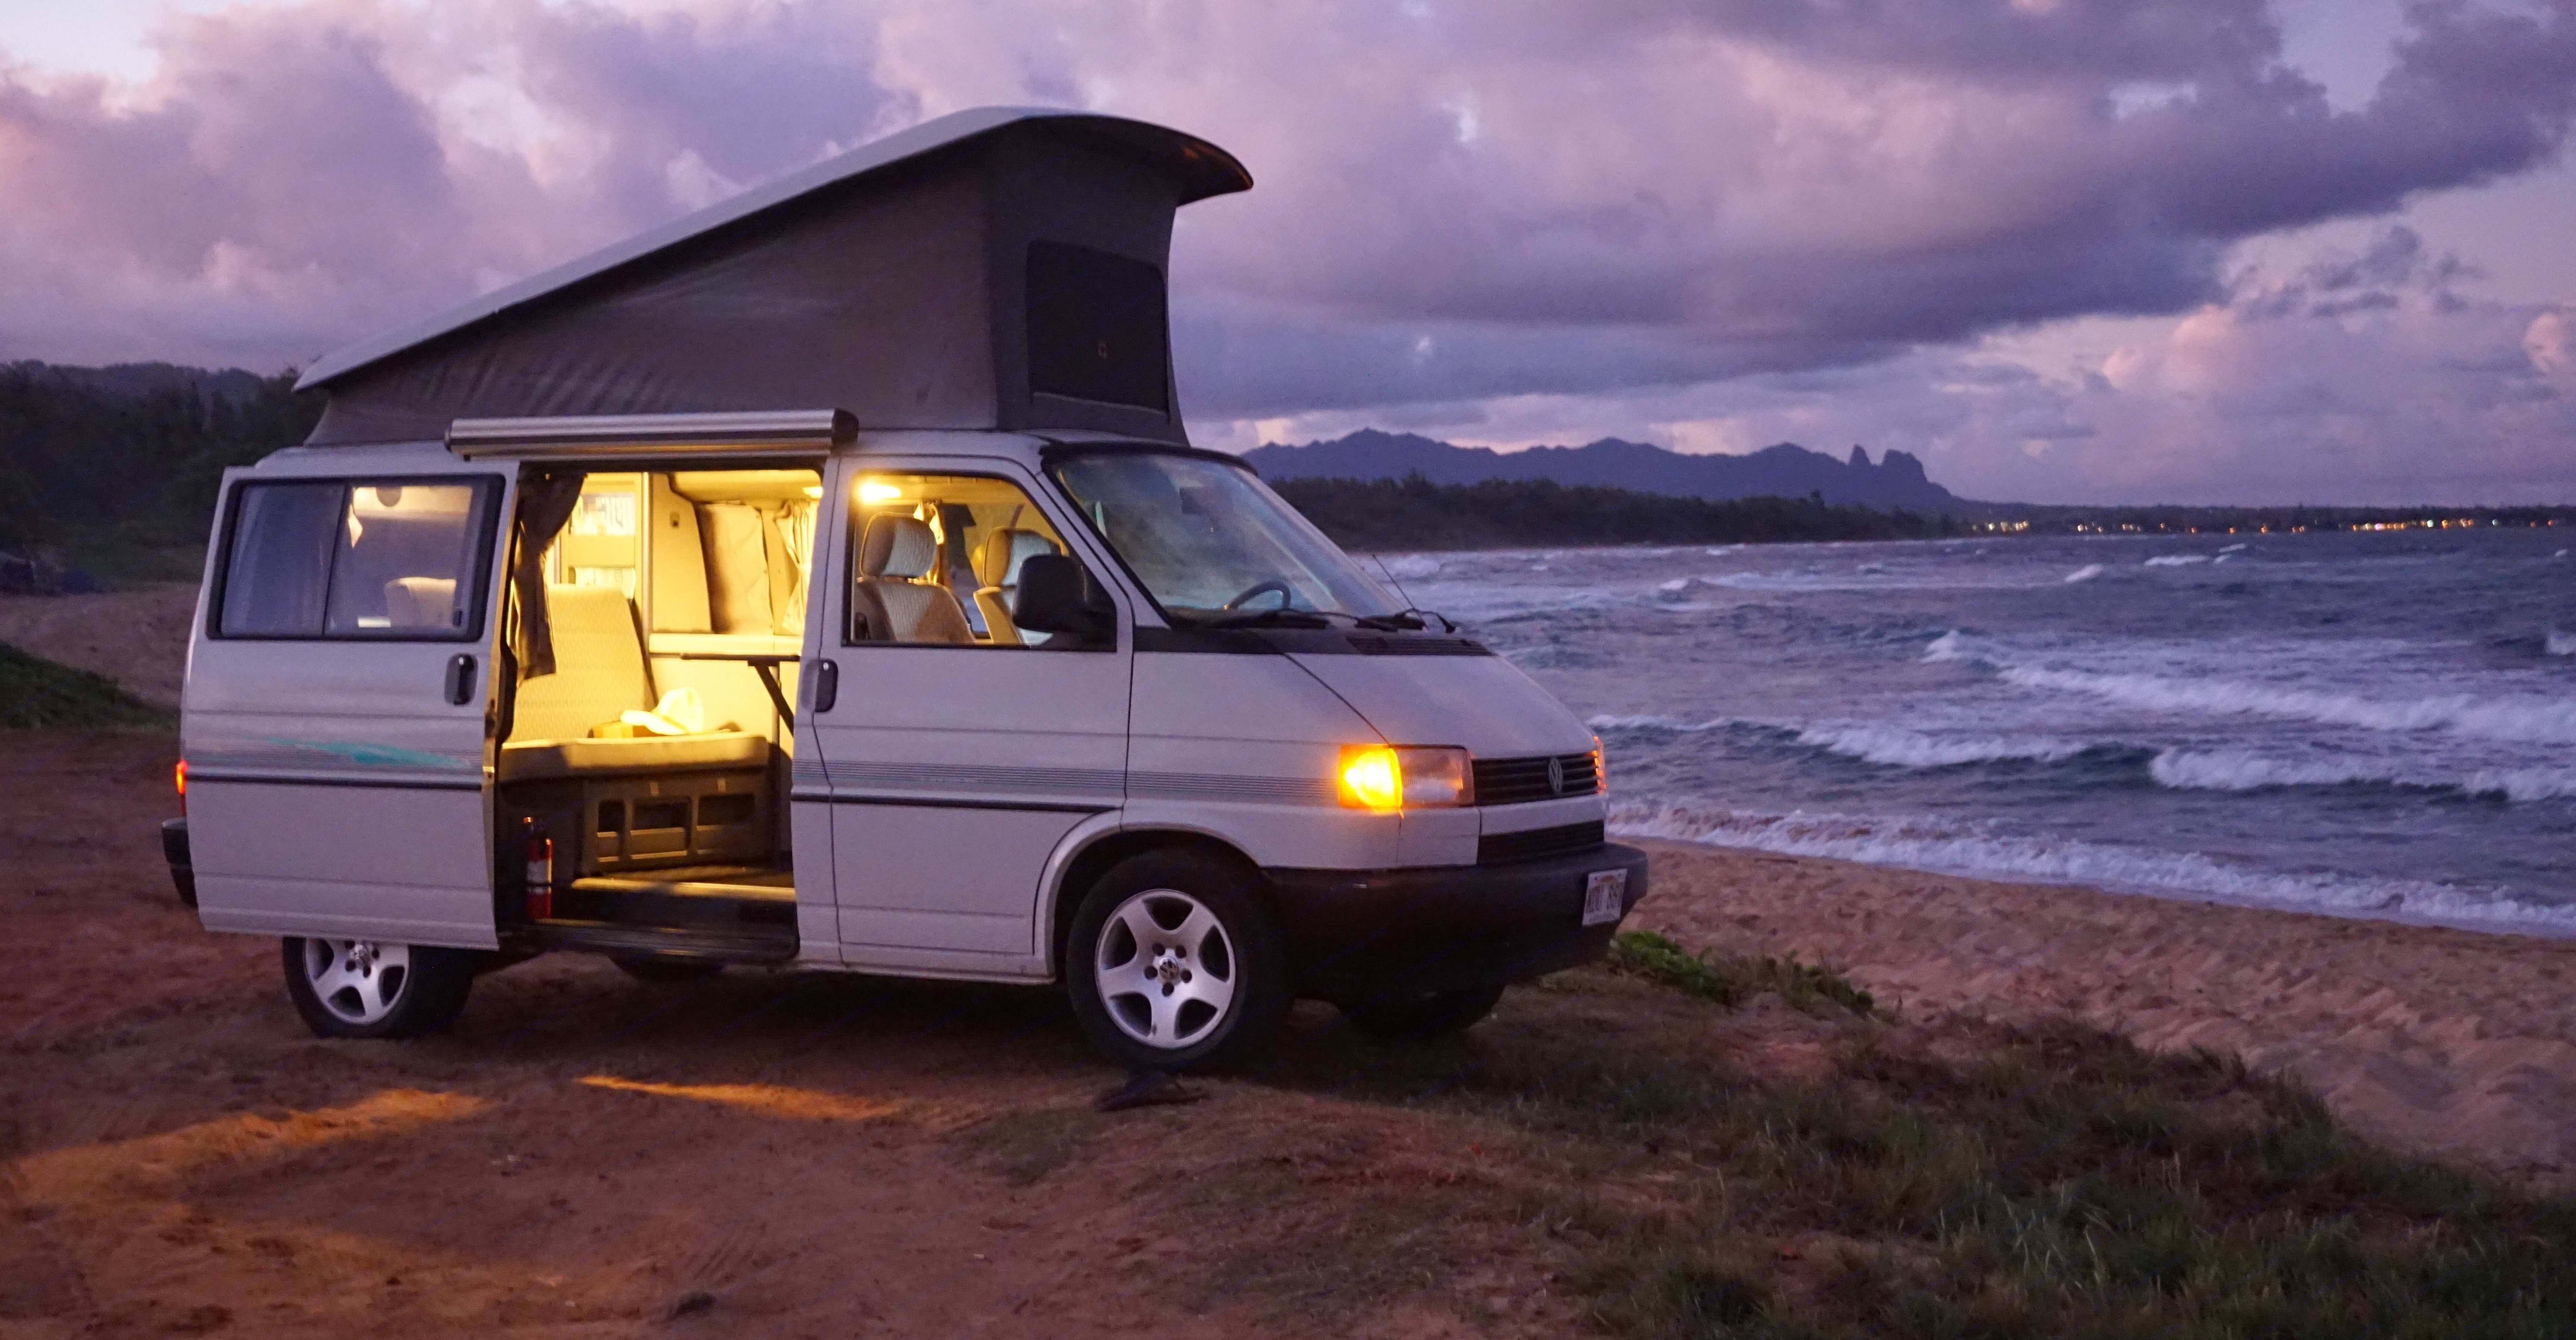 """Parking in the evening on Kauai beach. """"Life is not measured by the number of breaths we take, but by the moments that take our breath away"""" . Volkswagen Westfalia 1992"""